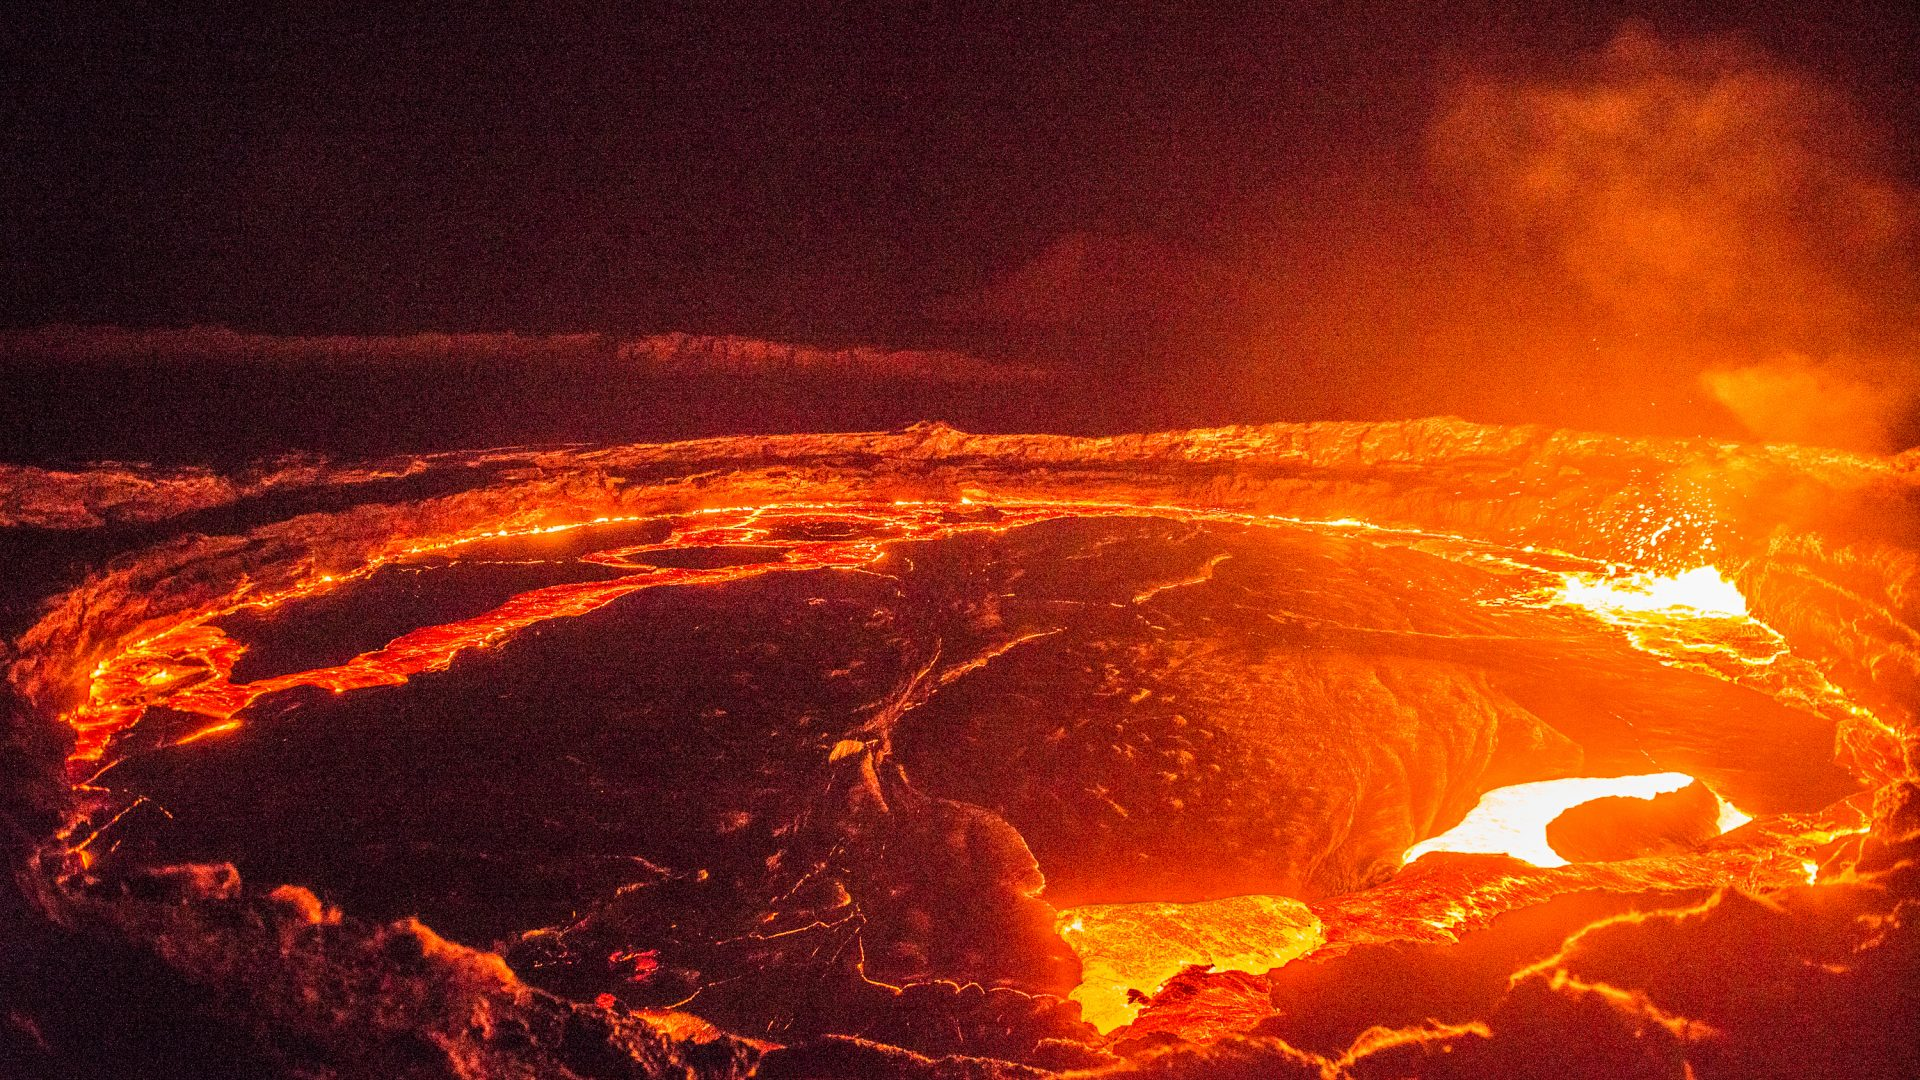 Hot Lava at the volcano Erta Ale in Ethiopia